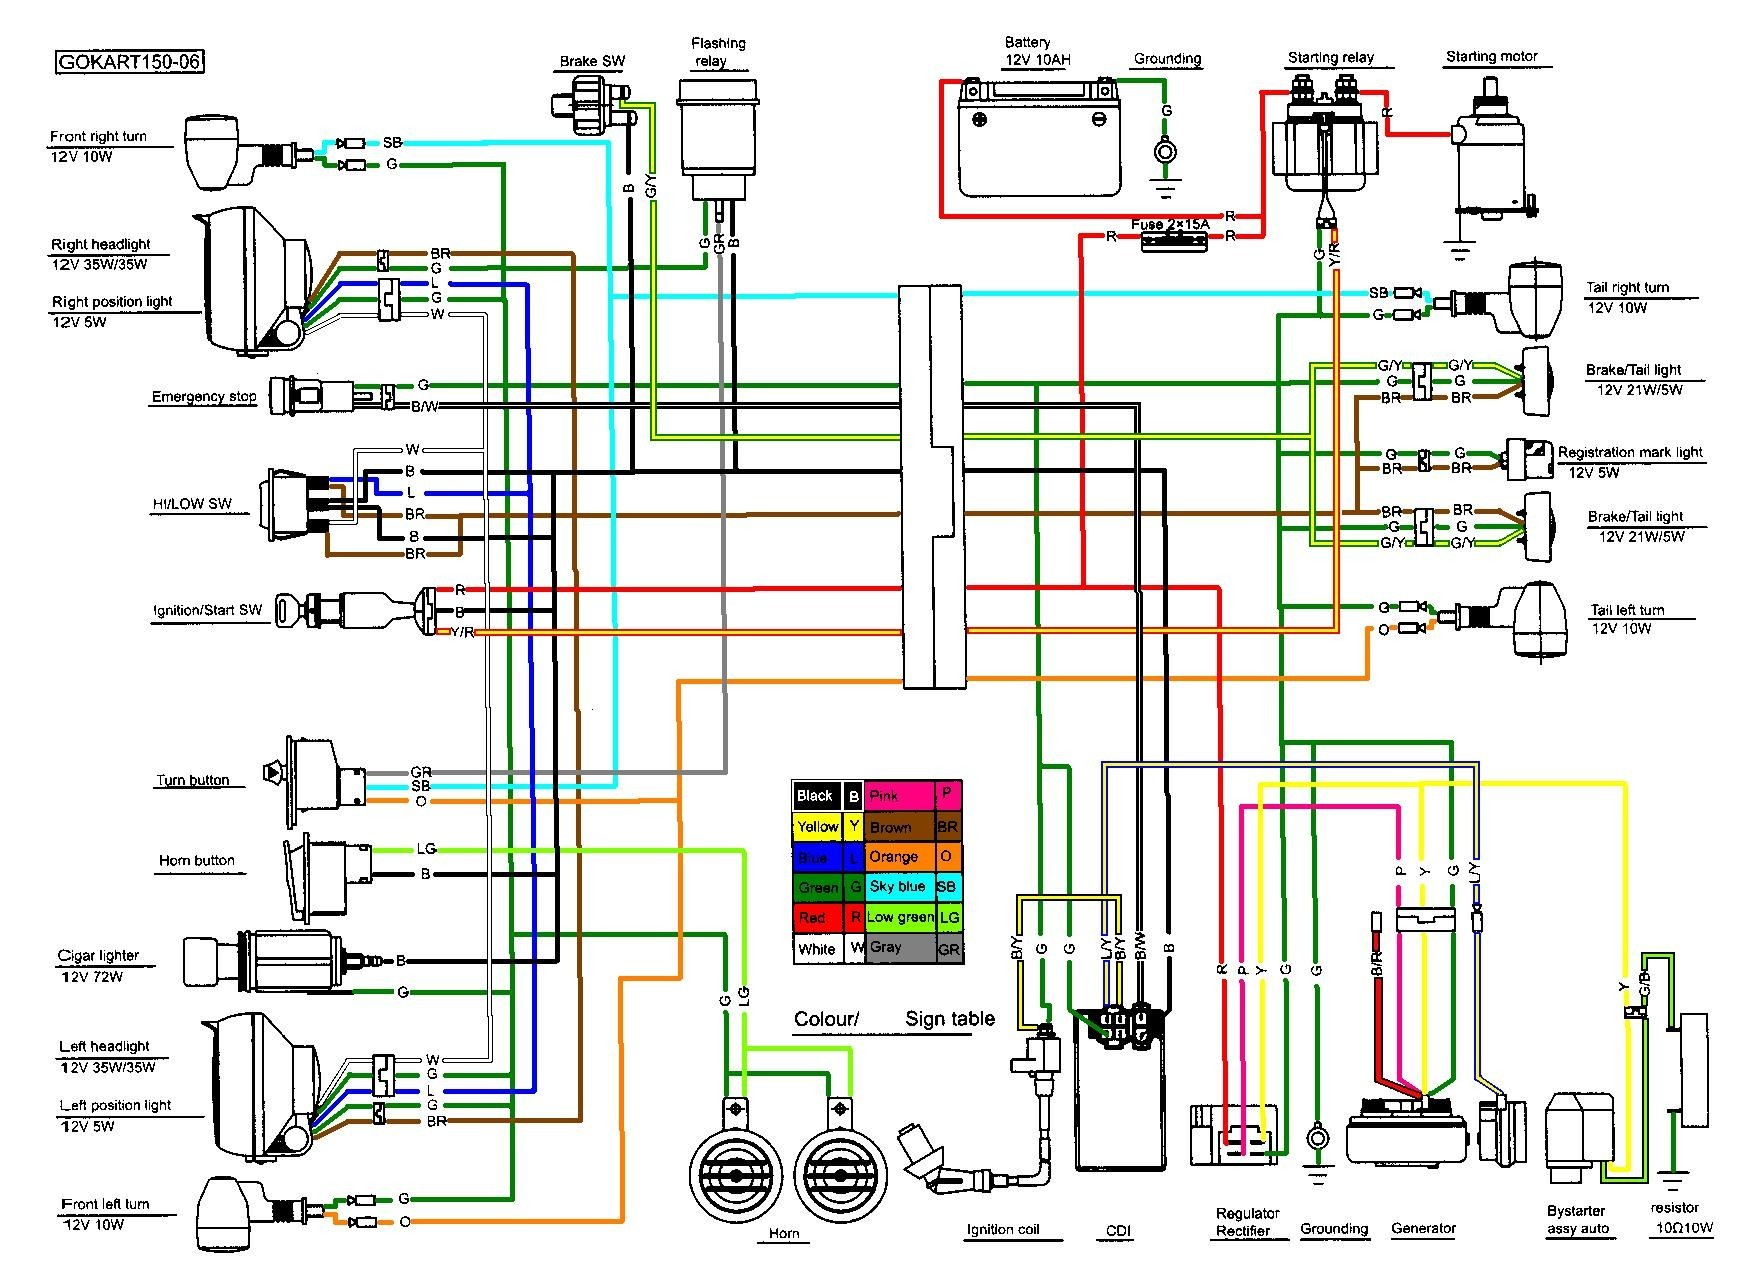 Chinese Quad Electrical Diagram 110cc Chinese Quad Wiring Diagram Wiring Diagram Of Chinese Quad Electrical Diagram